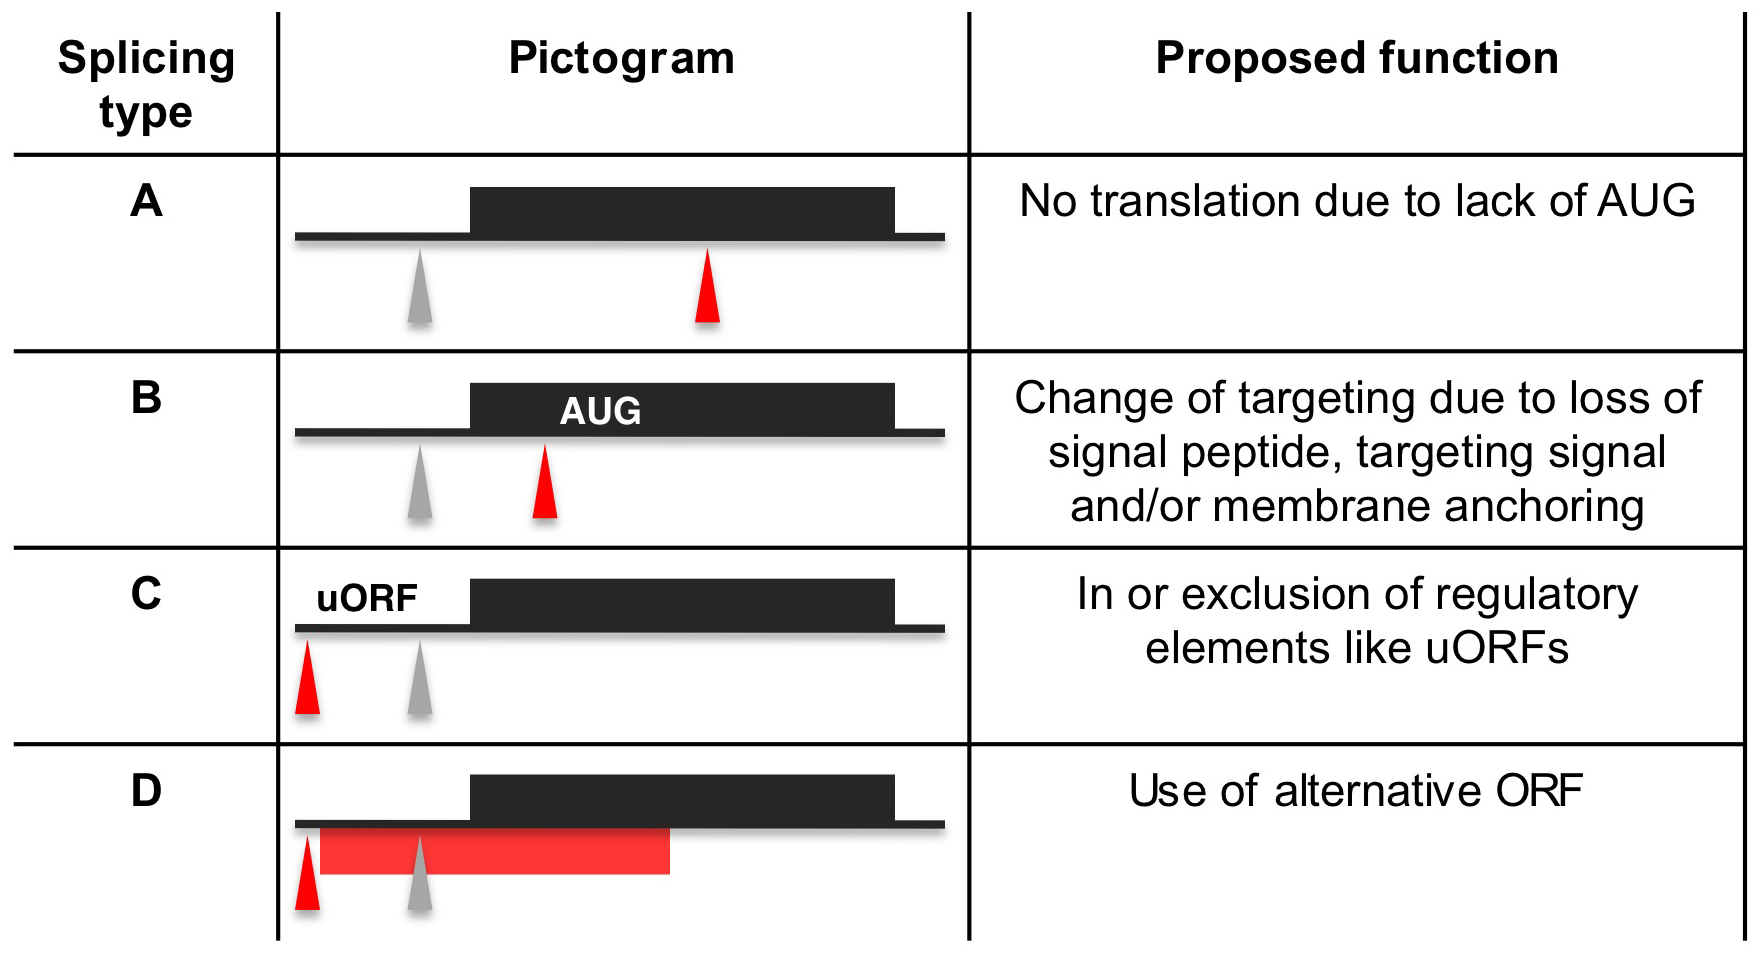 Proposed functions for alternative splicing variants.